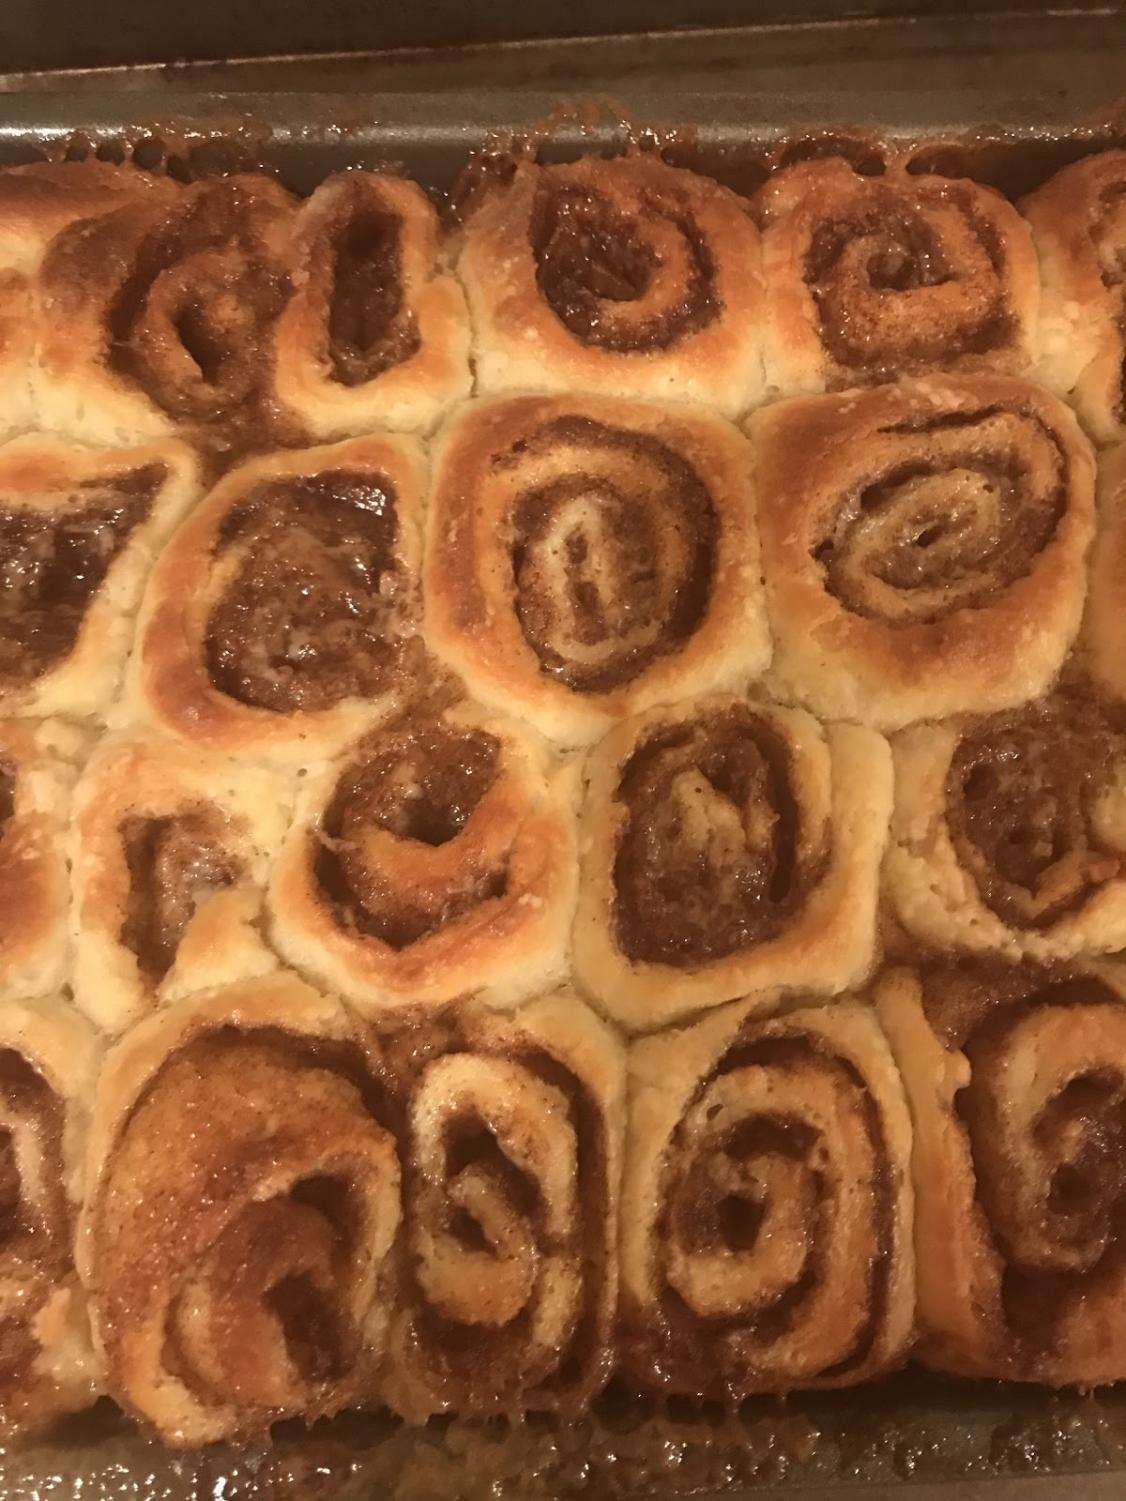 Cinnamon rolls are a delicious treat to get you in the fall spirit!